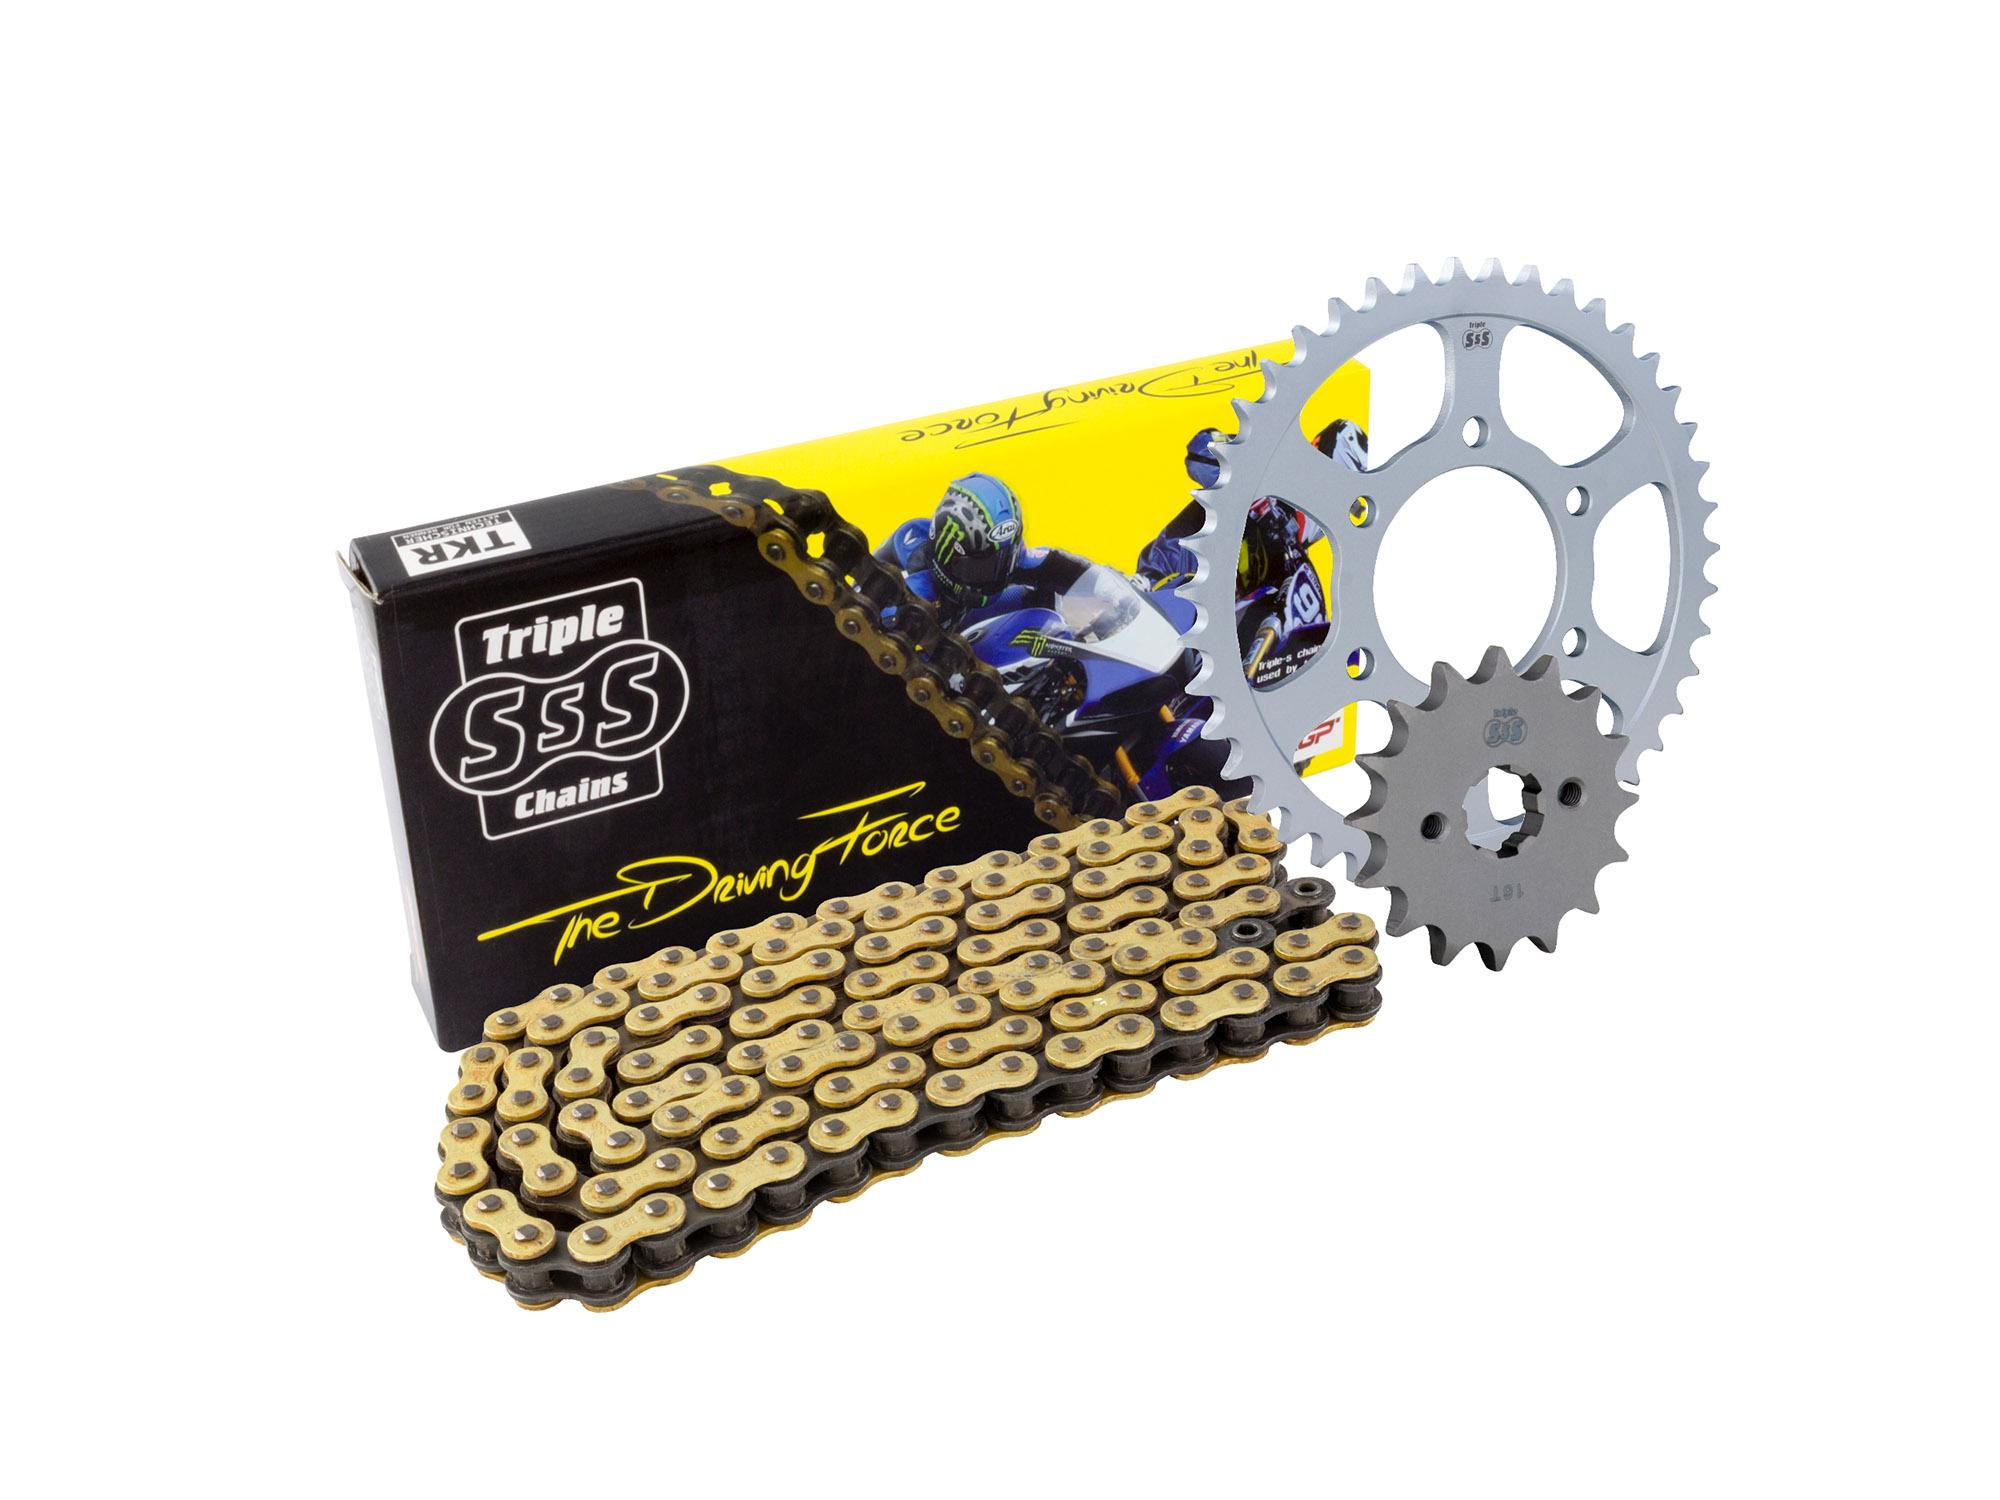 Suzuki GSX-R750 WW SRAD/ X Fuel Inj 98-99 Chain & Sprocket Kit: 16T Front, 44T Rear, HD O-Ring Gold Chain 525H 110 Link